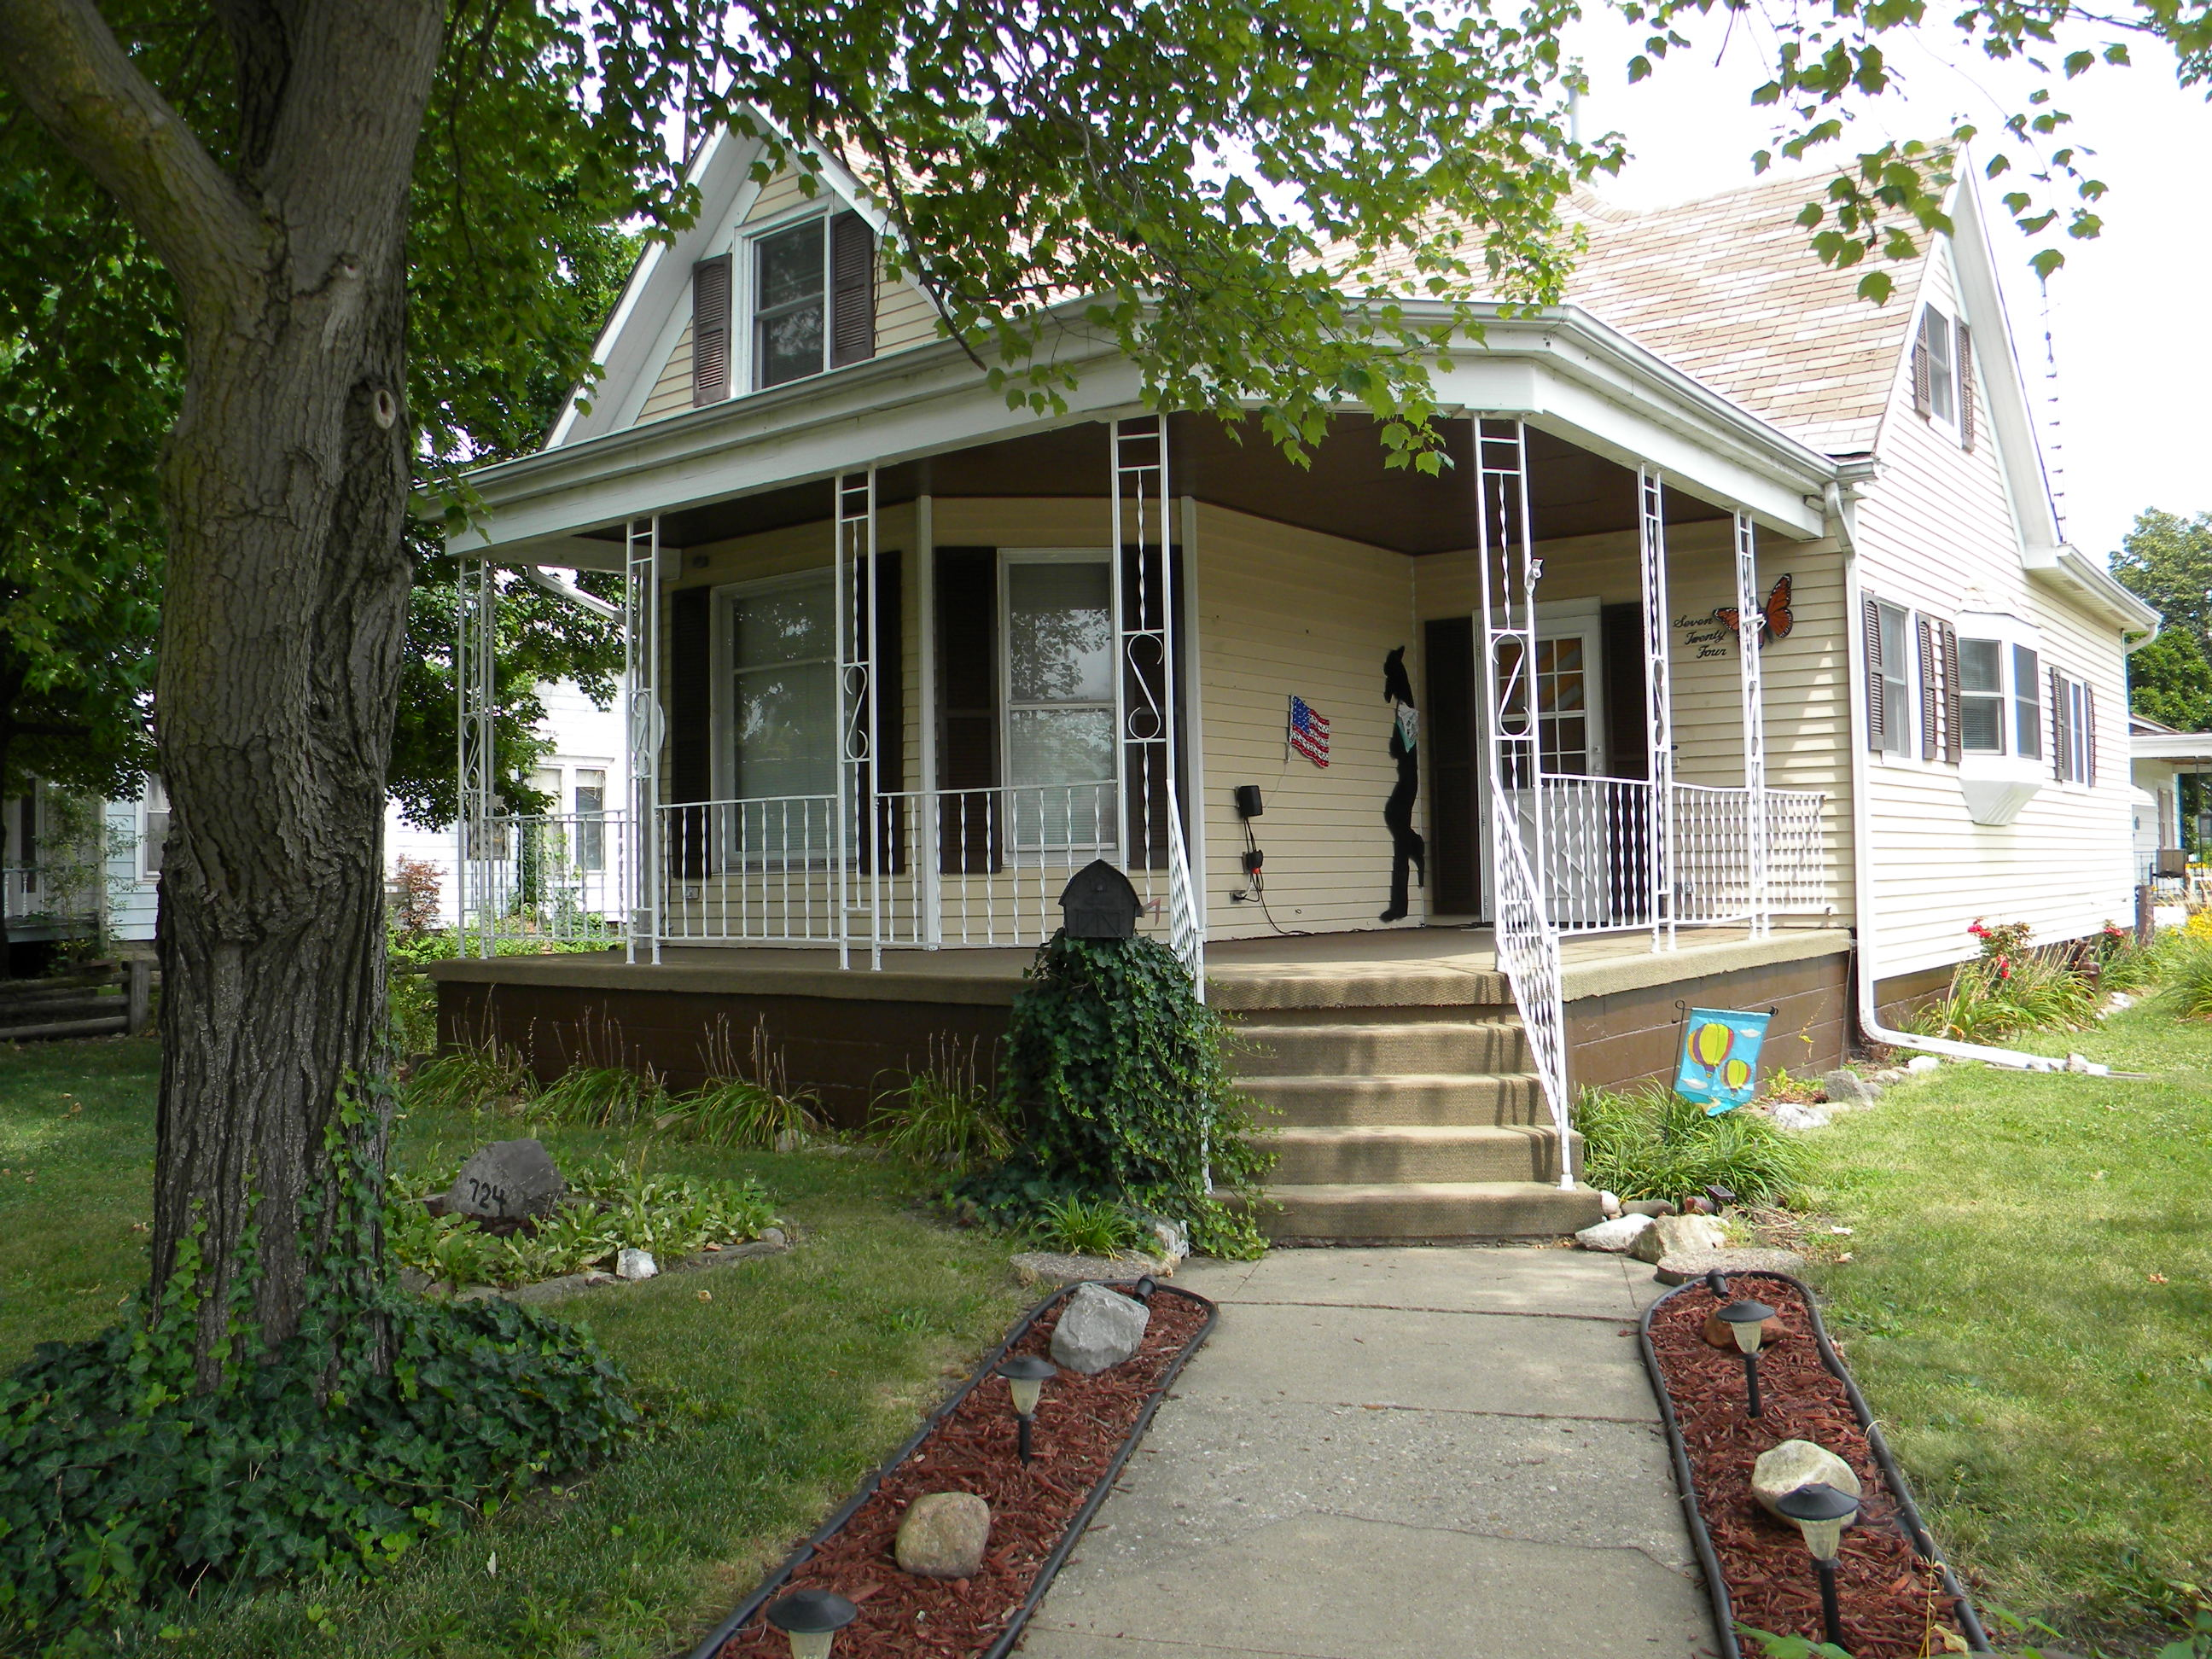 724 Tremont Street, Lincoln, Illinois 62656